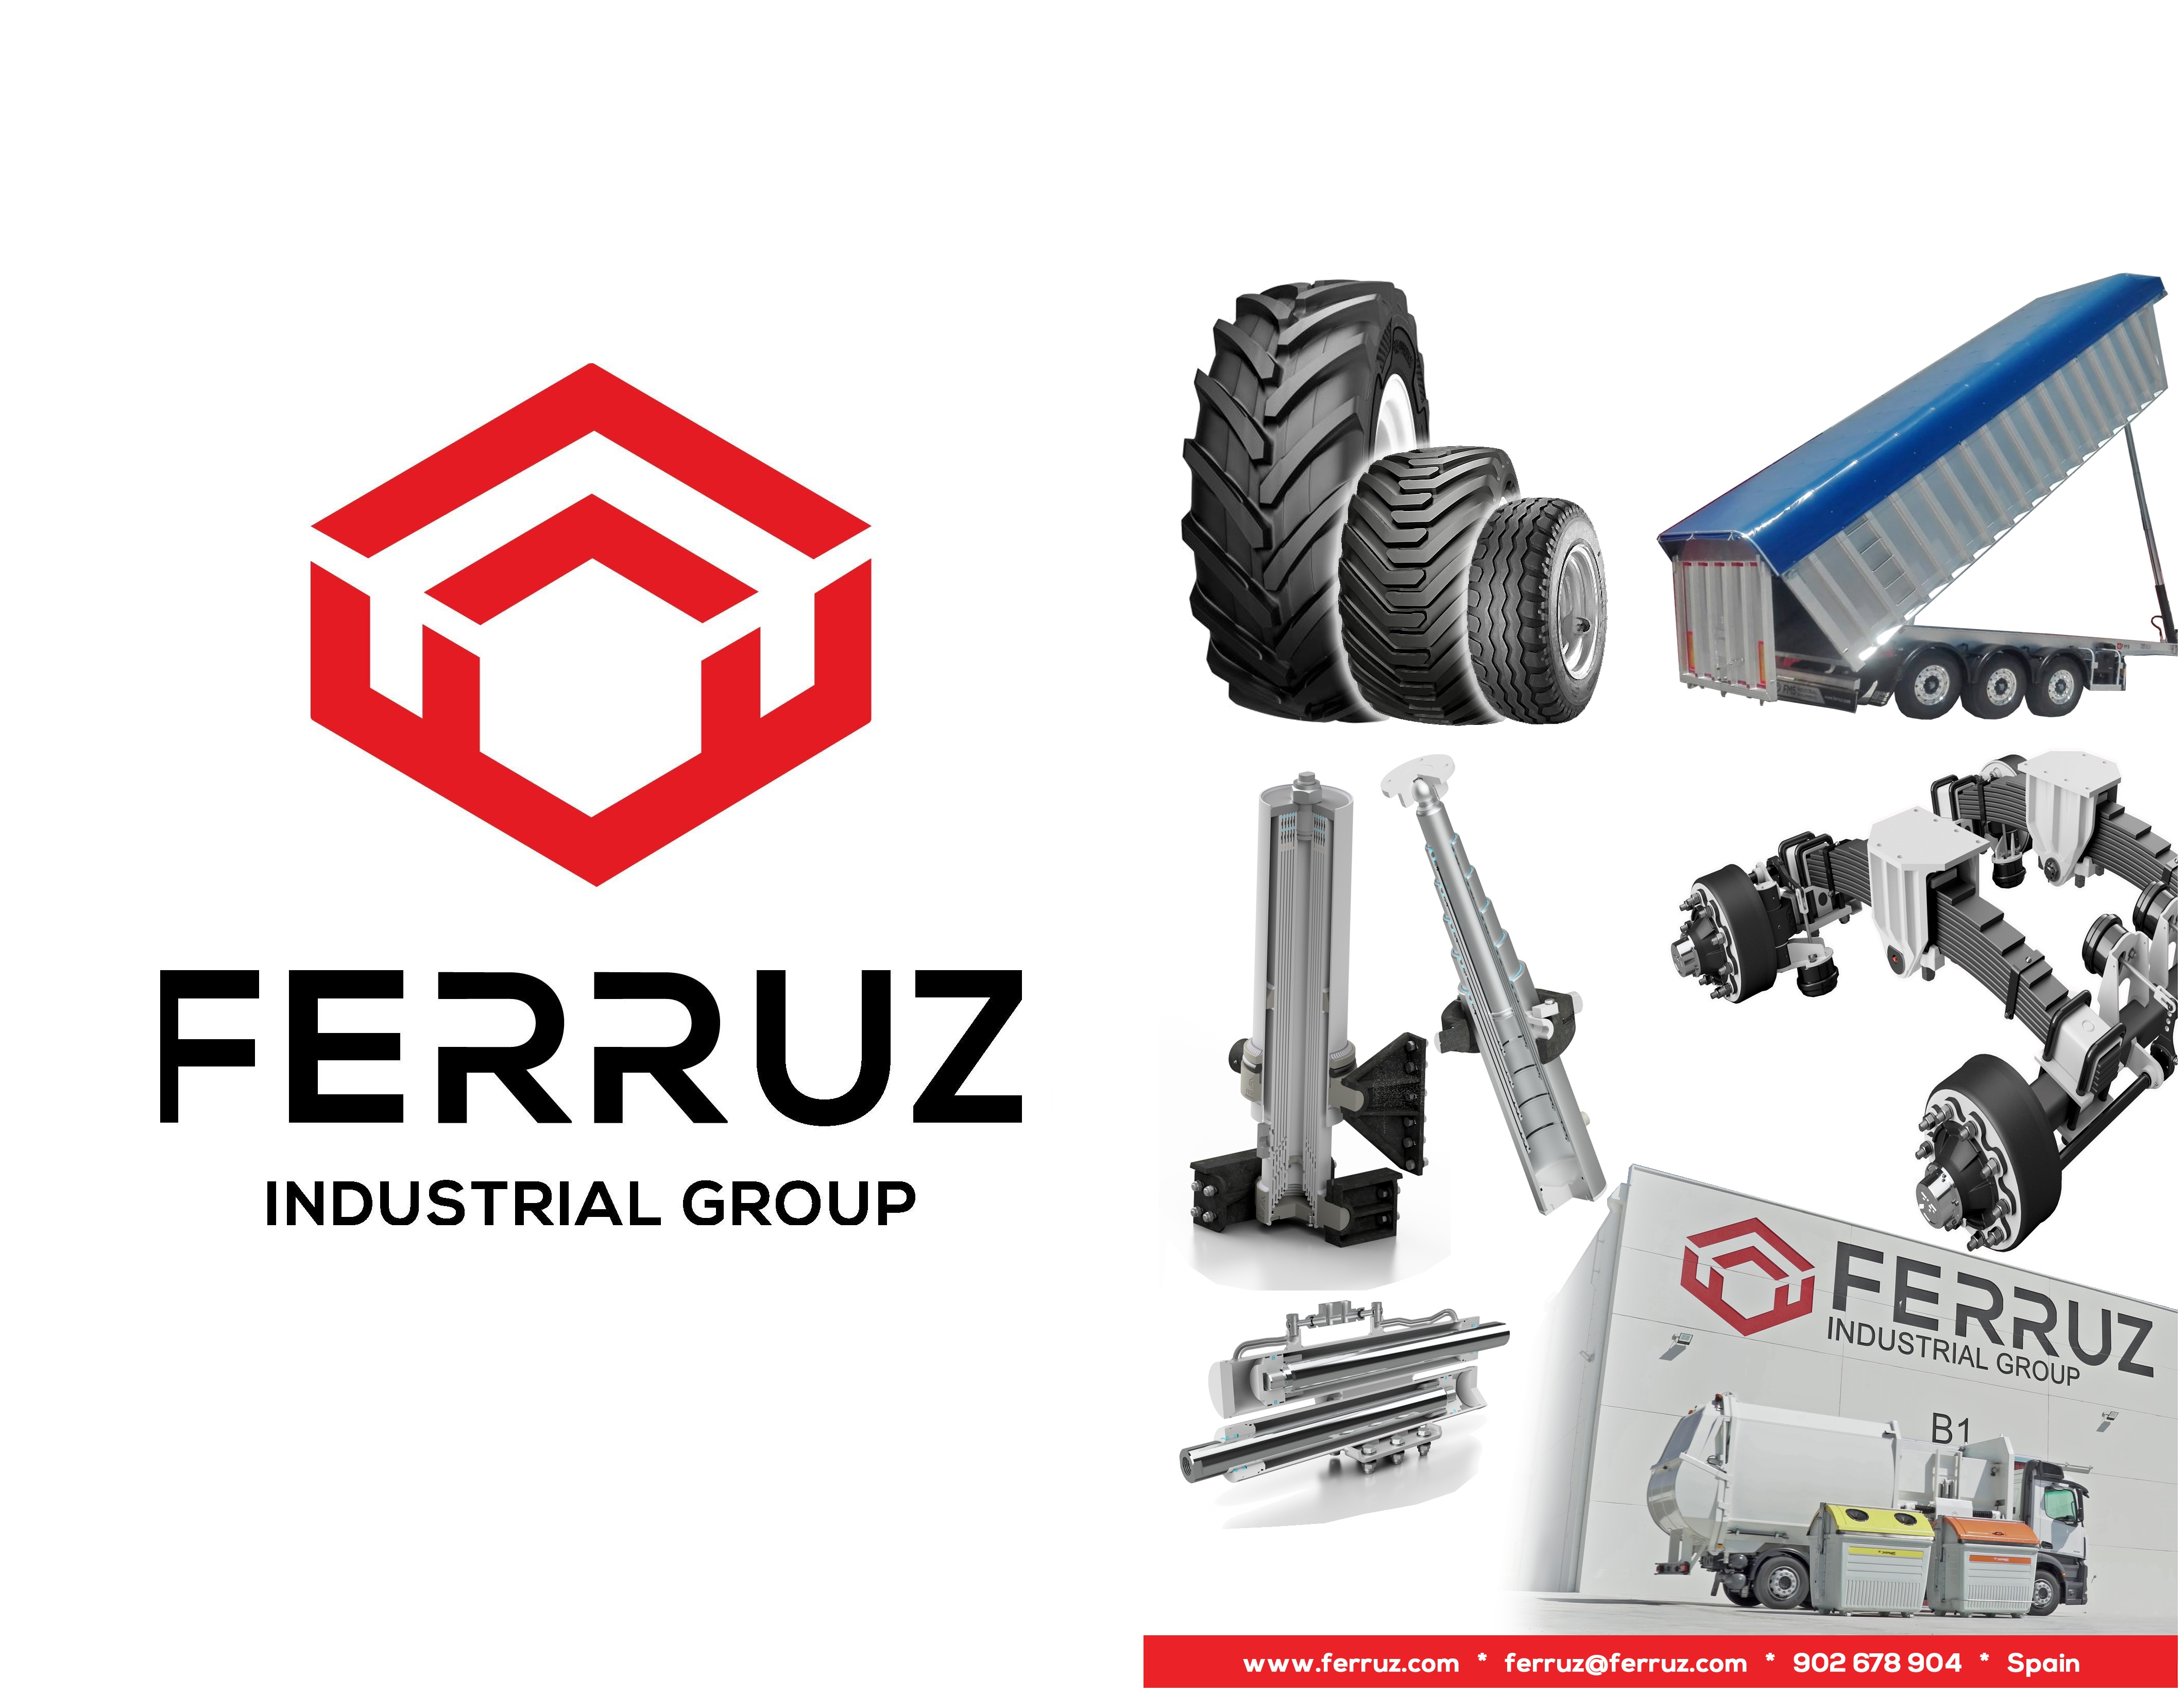 Industrial Ferruz Group,  leader company in the manufacture of cylinders, hydraulic components, running axles and suspensions for agricultural and industrial machinery